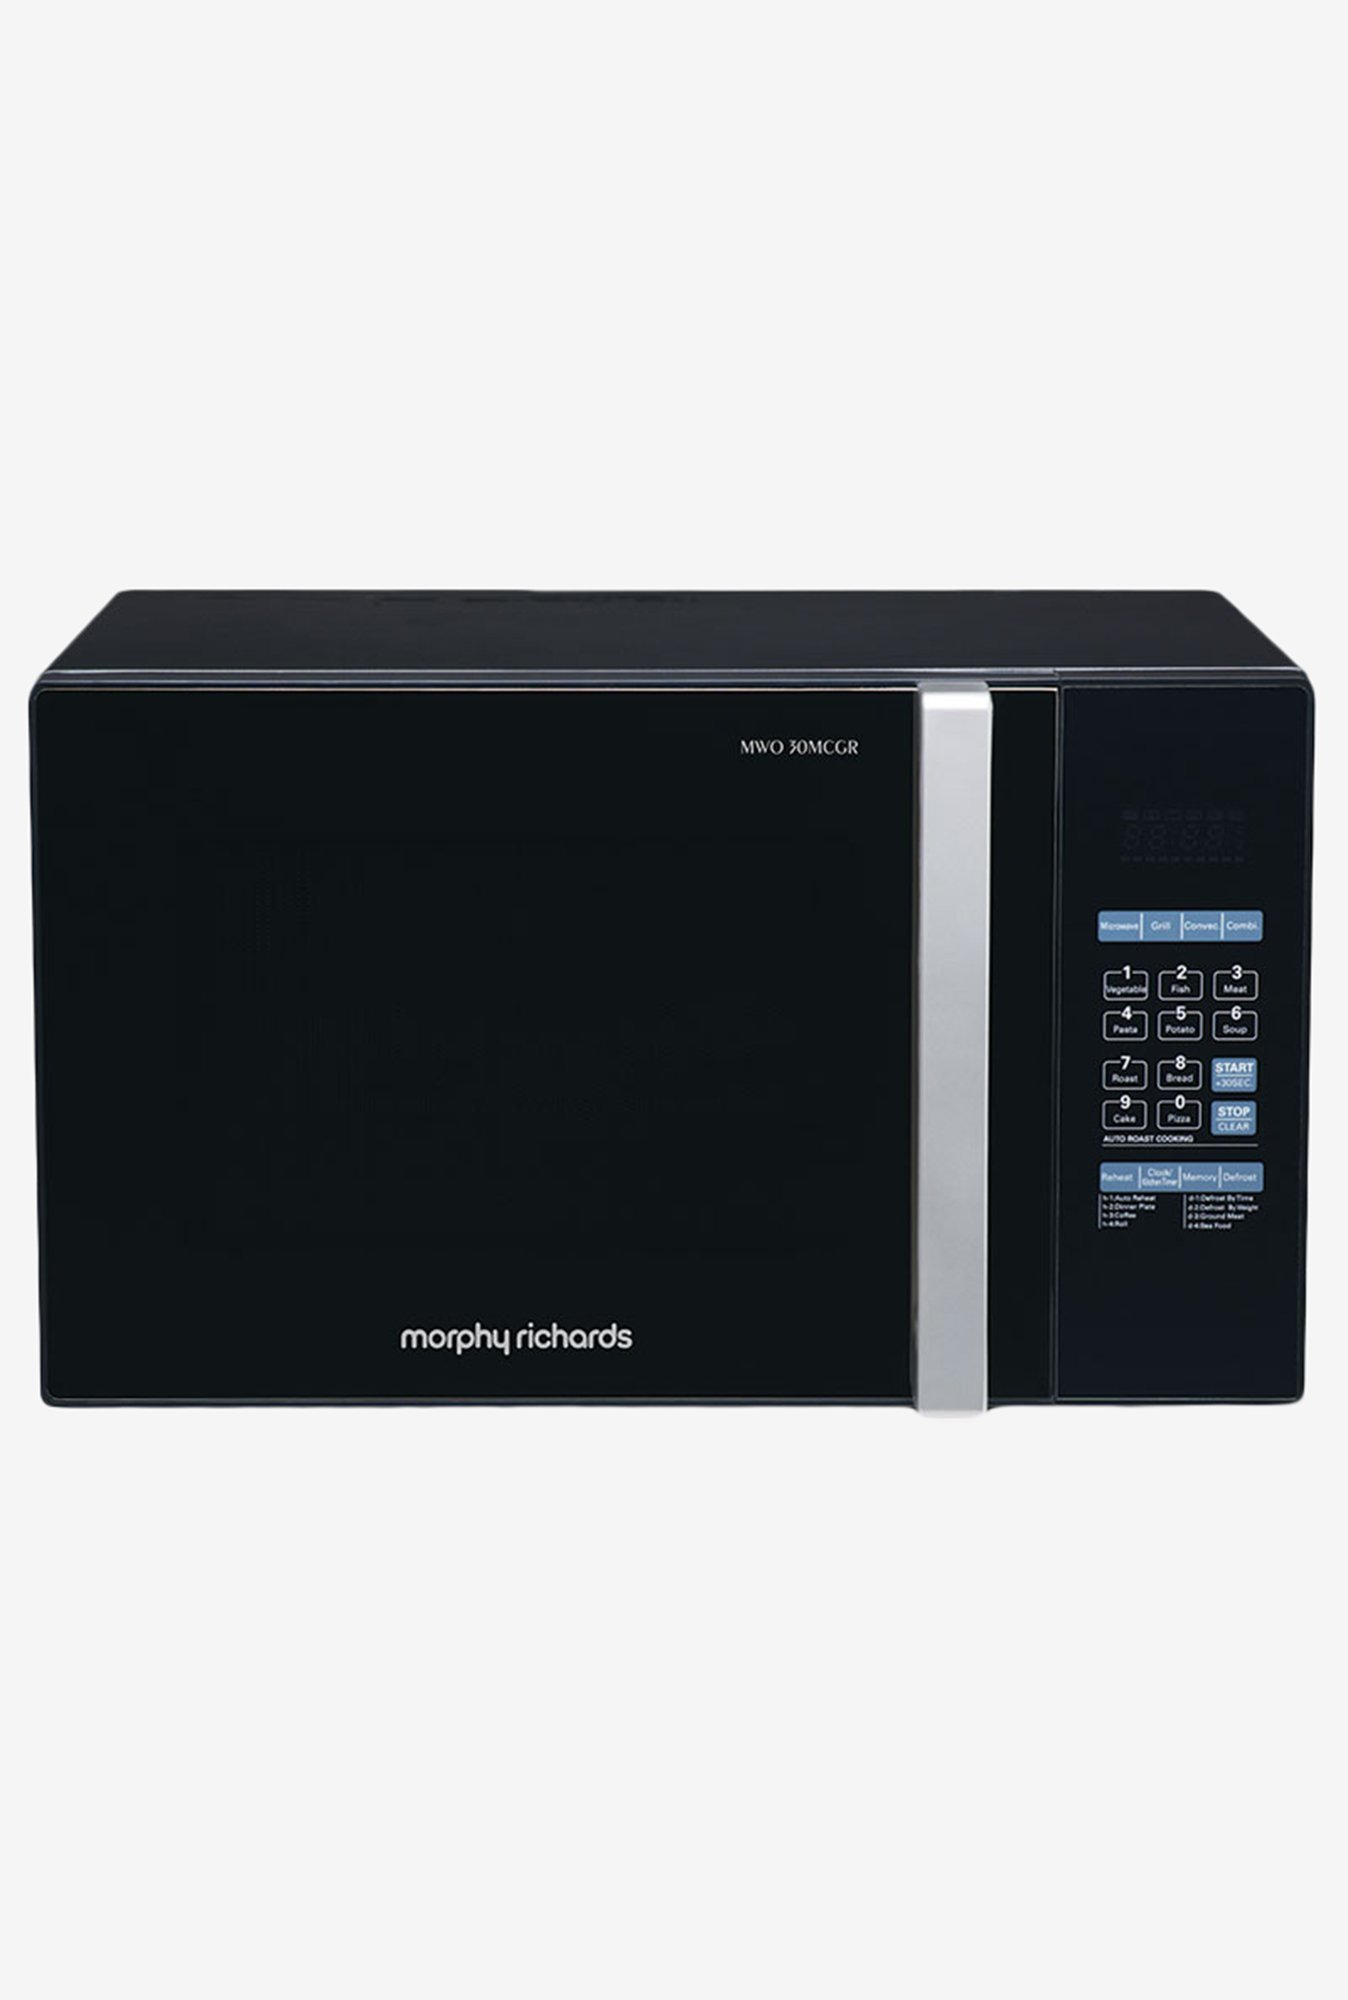 Morphy Richards 30MCGR 30L Convection Microwave Black